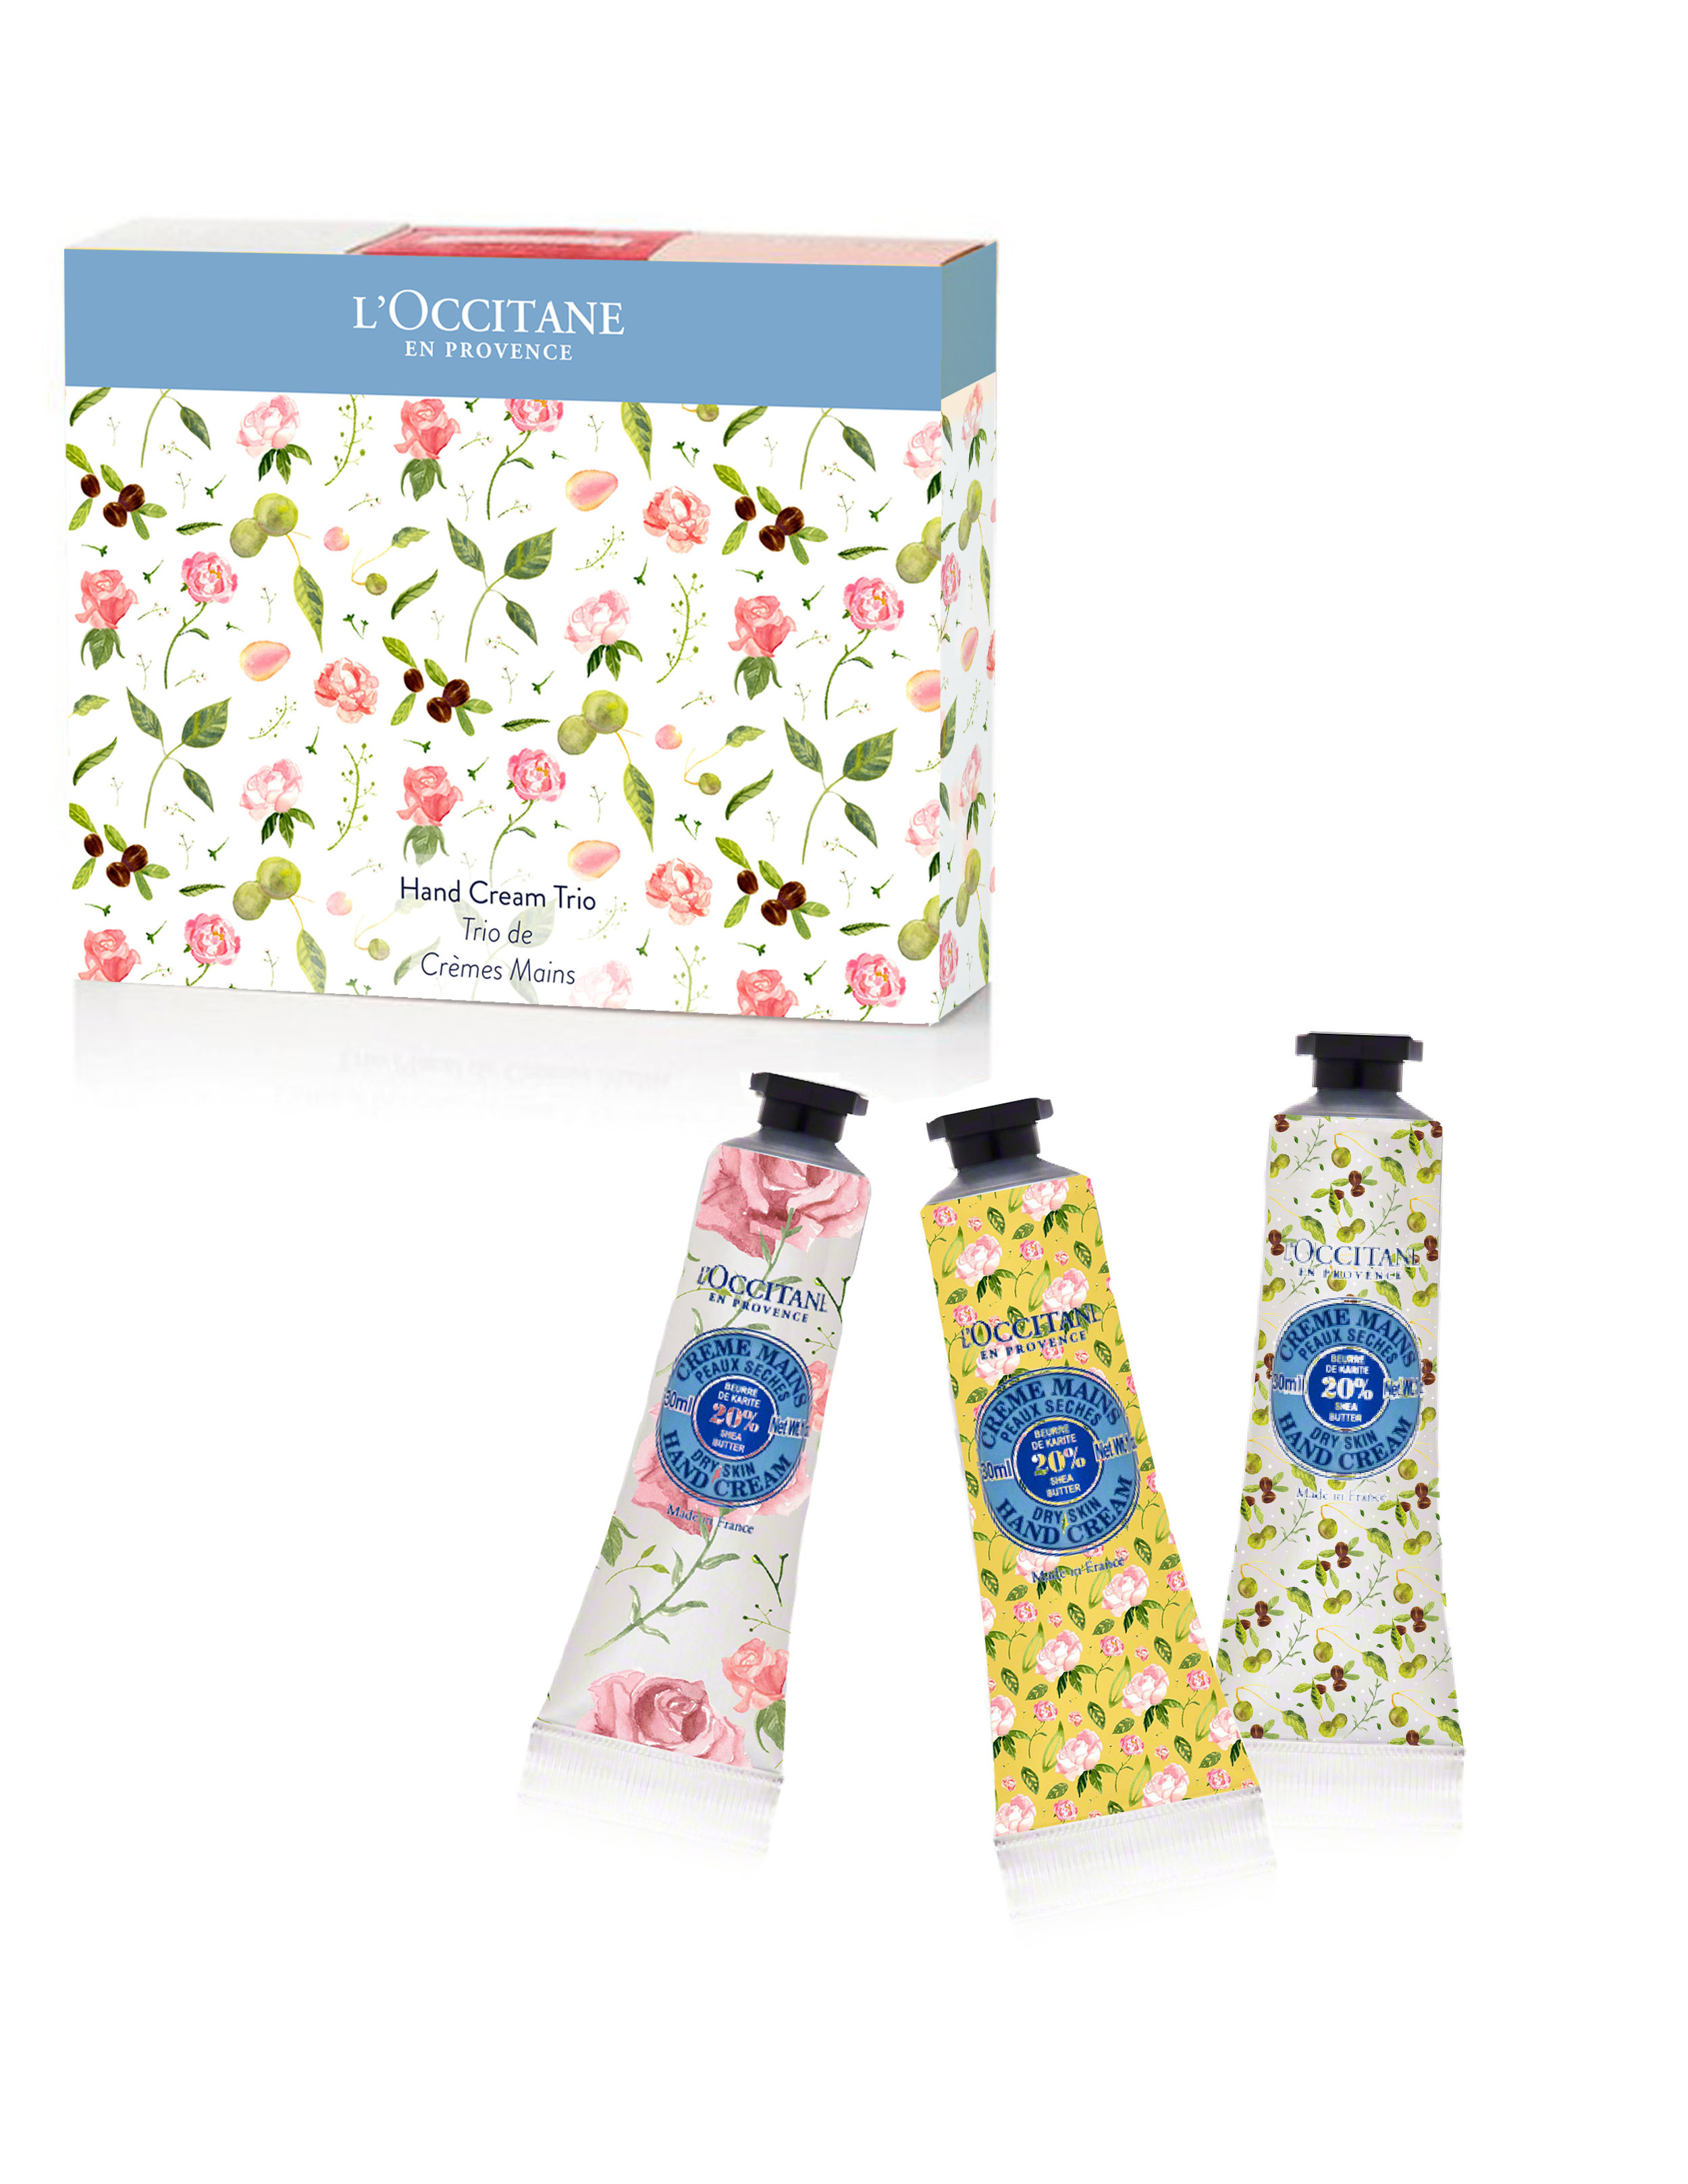 L'Occitane En Provence Package Design